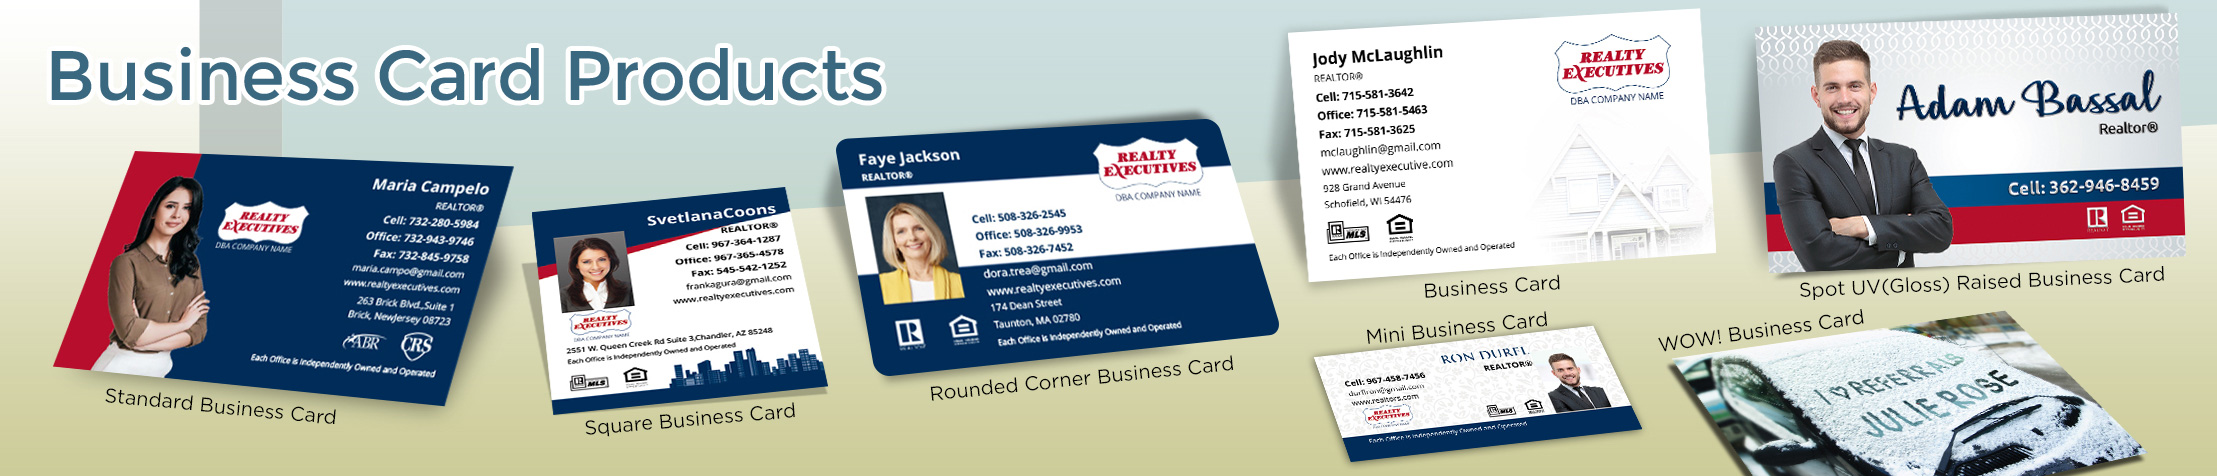 Realty Executives Real Estate Business Card Products - Realty Executives  - Unique, Custom Business Cards Printed on Quality Stock with Creative Designs for Realtors | BestPrintBuy.com